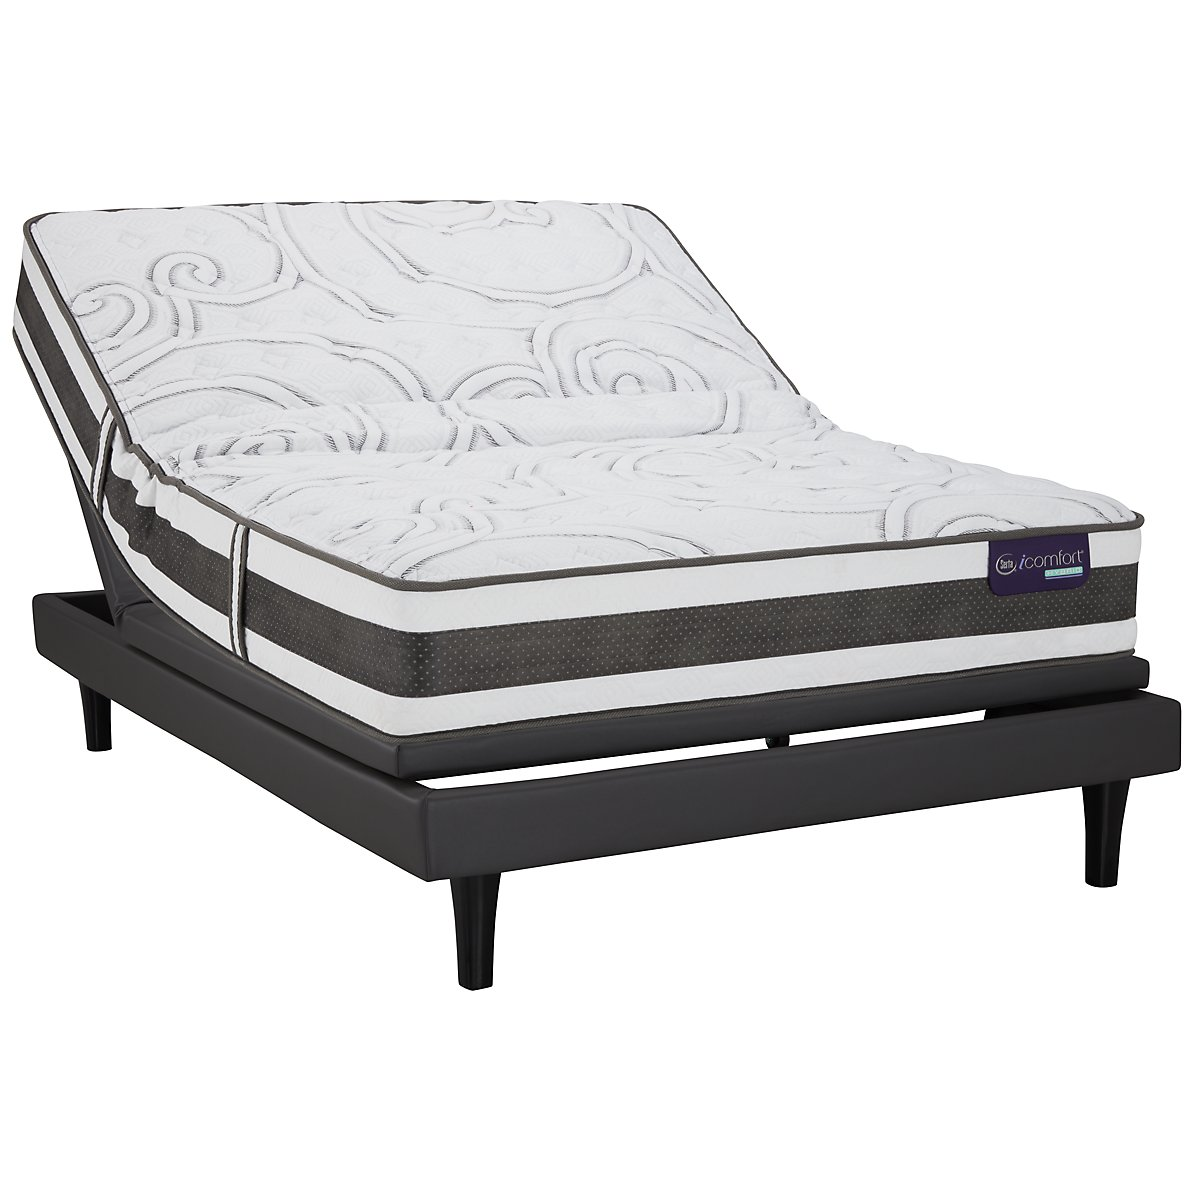 Serta iComfort Applause2 Hybrid Motion Perfect™ III Adjustable Mattress Set